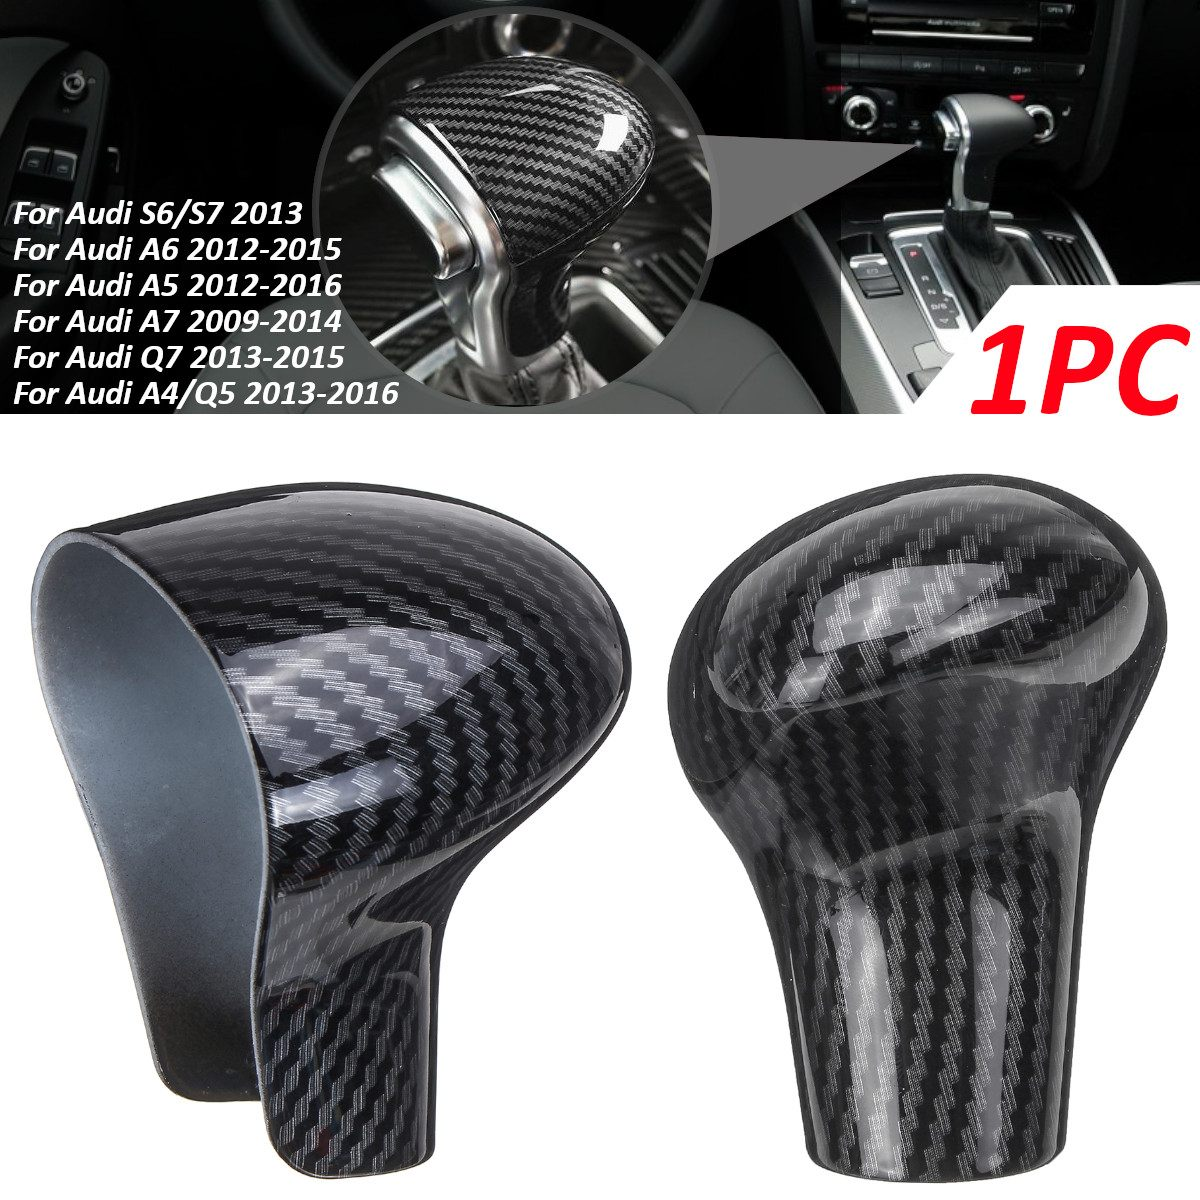 LHD Car ABS Carbon Fiber Speed Gear Shift Knob Cover Cap Sticker Trim For <font><b>Audi</b></font> A3 8V S3 <font><b>A4</b></font> B8 A5 A6 C7 S6 A7 S7 A8 Q5 2009 -2016 image